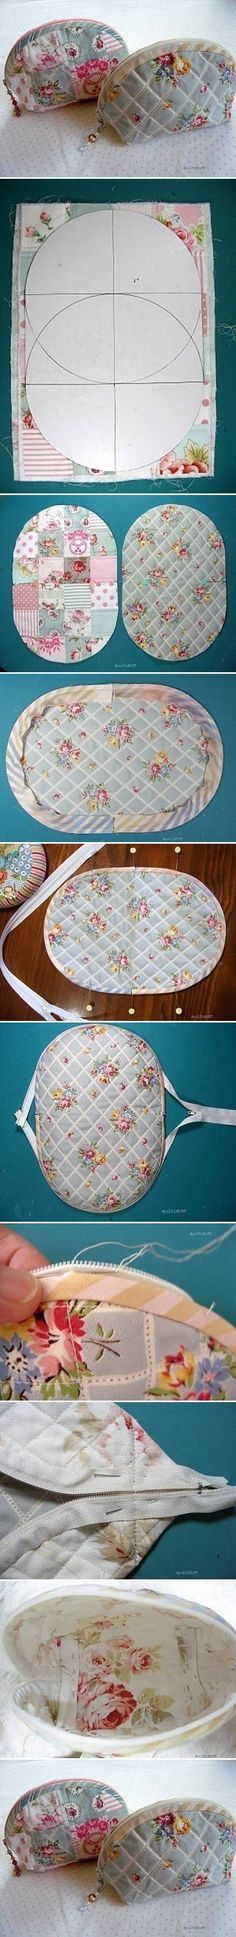 DIY Pouch with Zipper